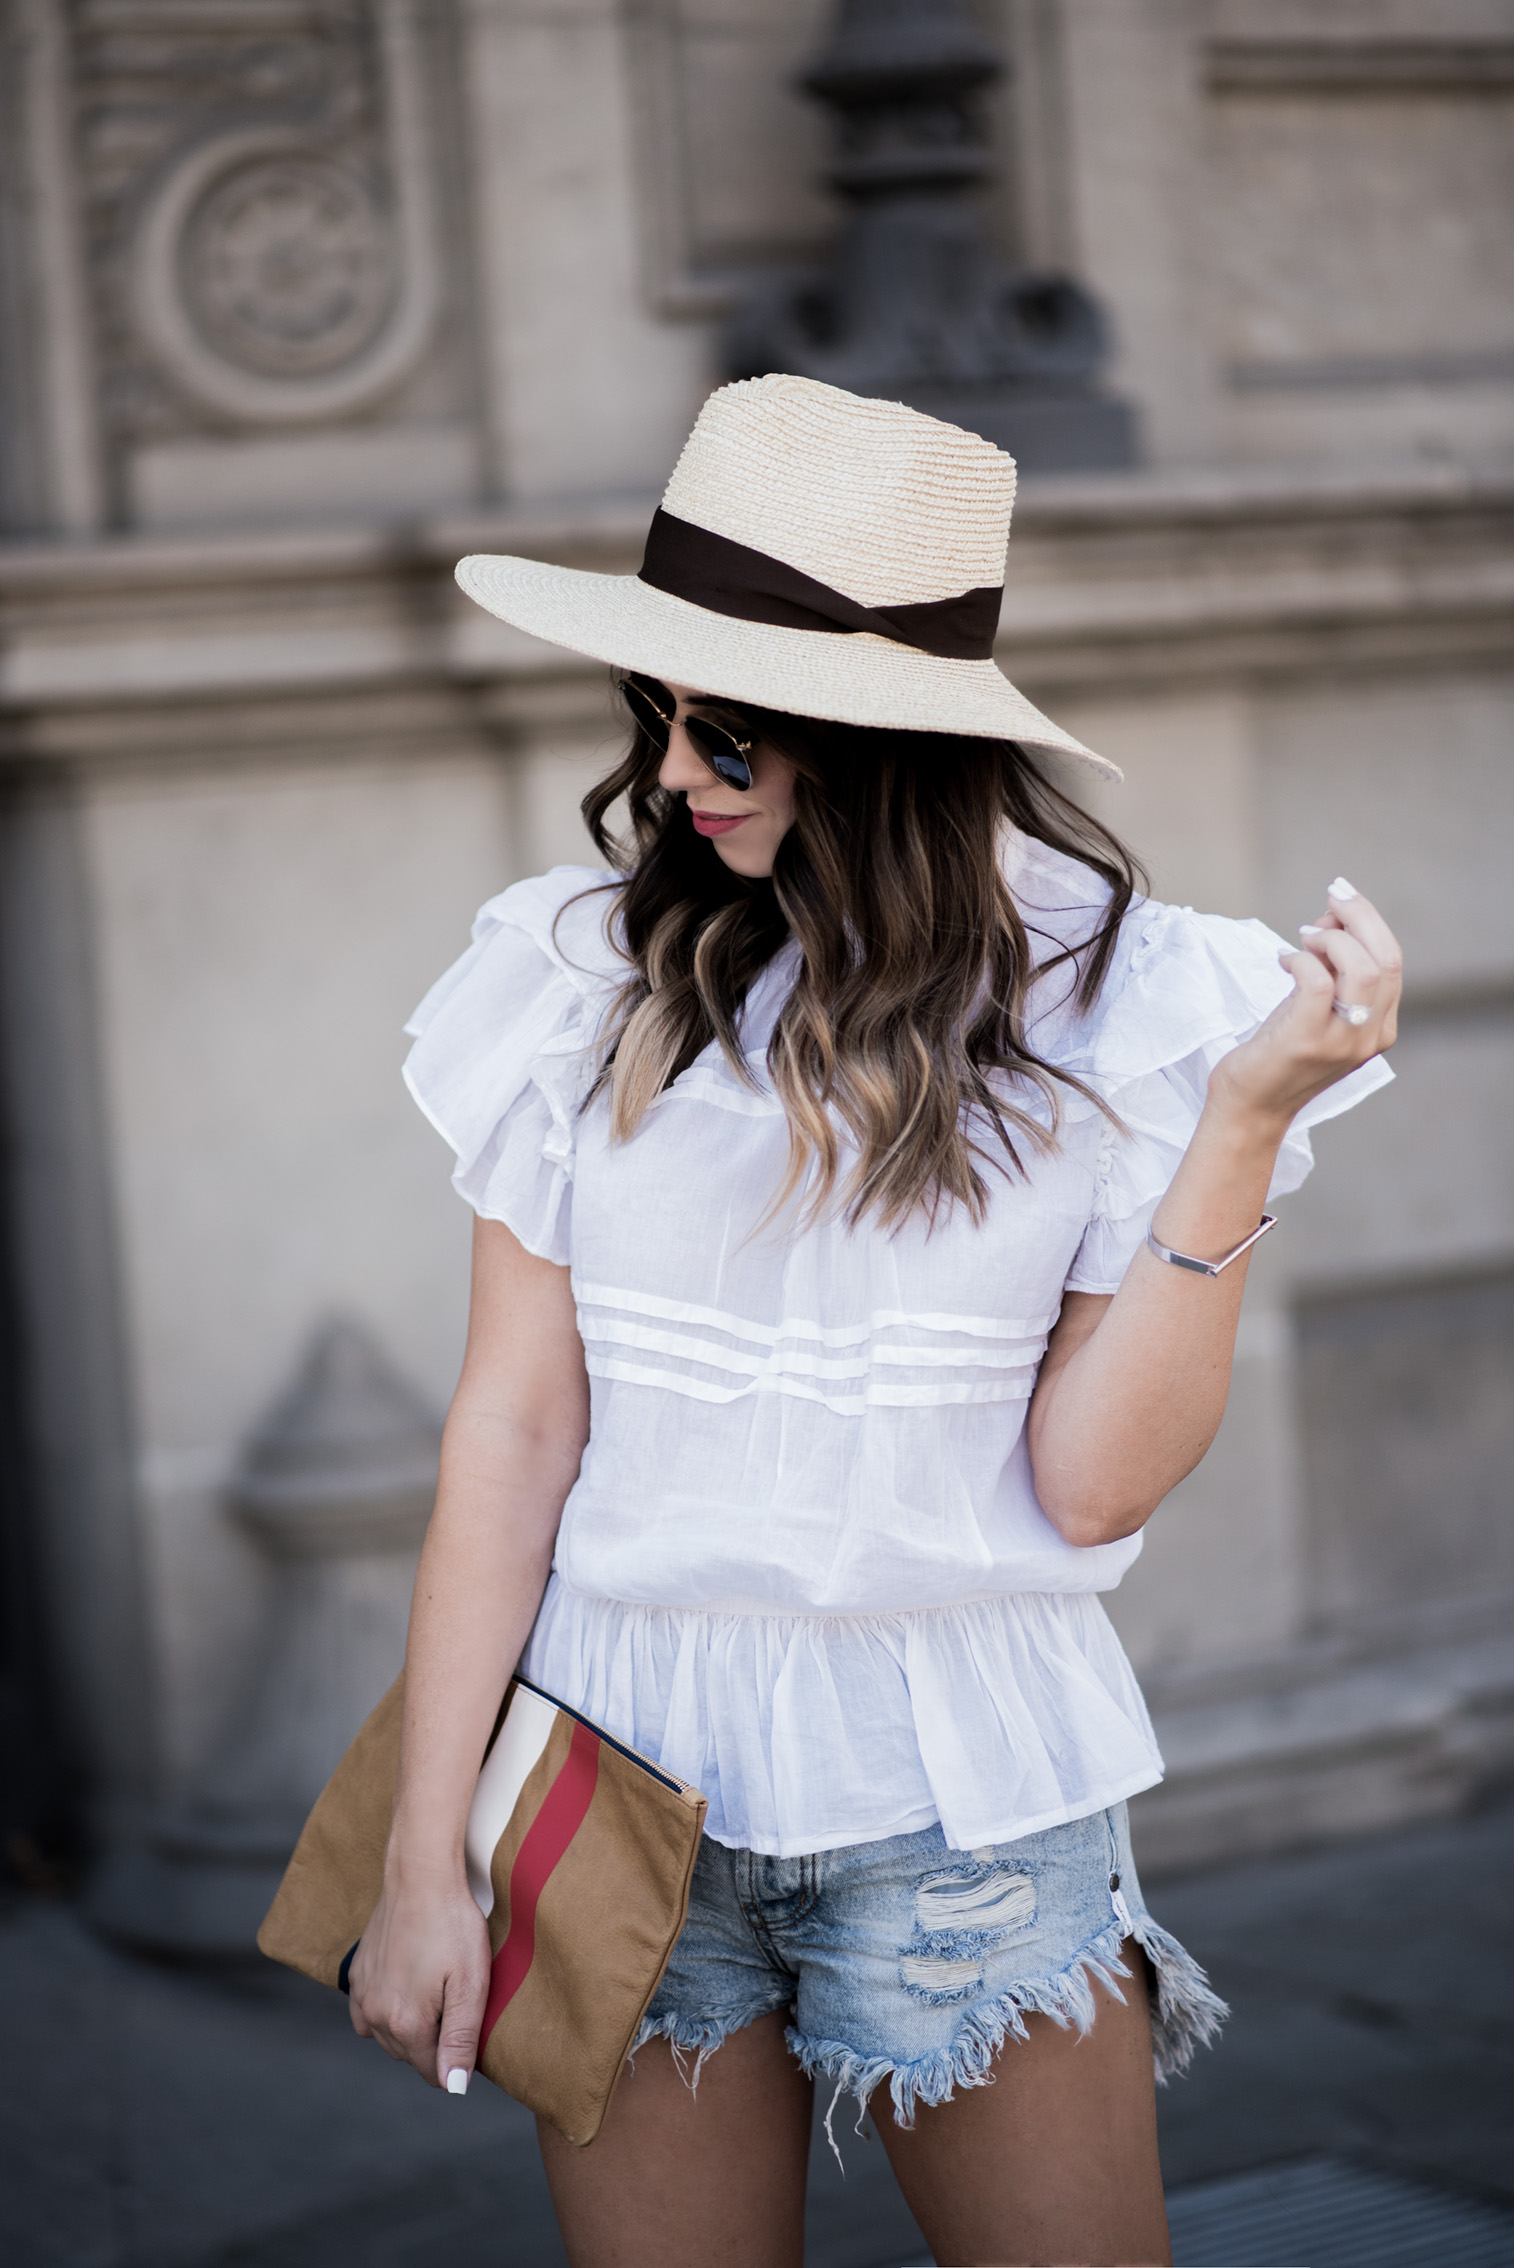 Tiffany Jais Houston fashion and lifestyle blogger | Happy 4th-The Barcelona Edition | White ruffle blouse, Brixton Willow Hat, Clare V Clutch, One Teaspoon Brandos Shorts, casual outfits, What to wear on the 4th of July, 4th of July outfit ideas